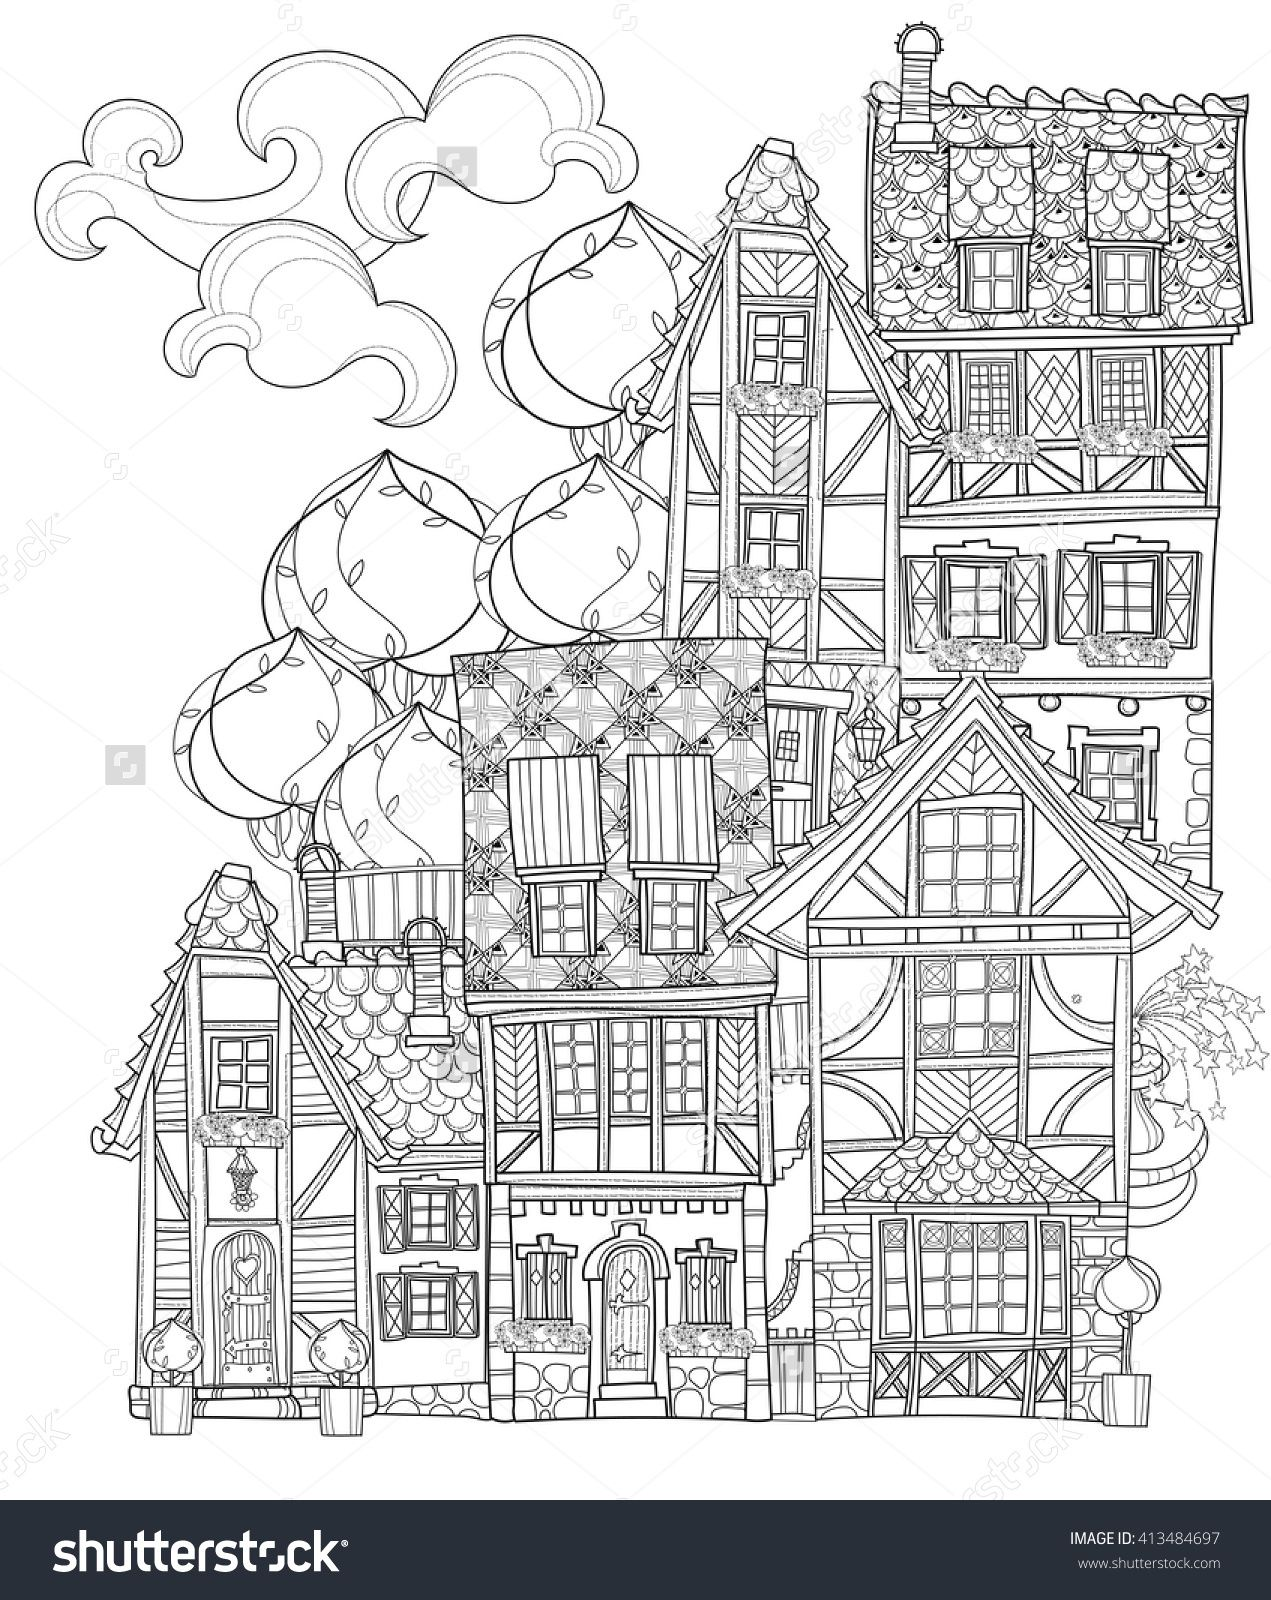 cute fairy tale town coloring adult page Coloring pages